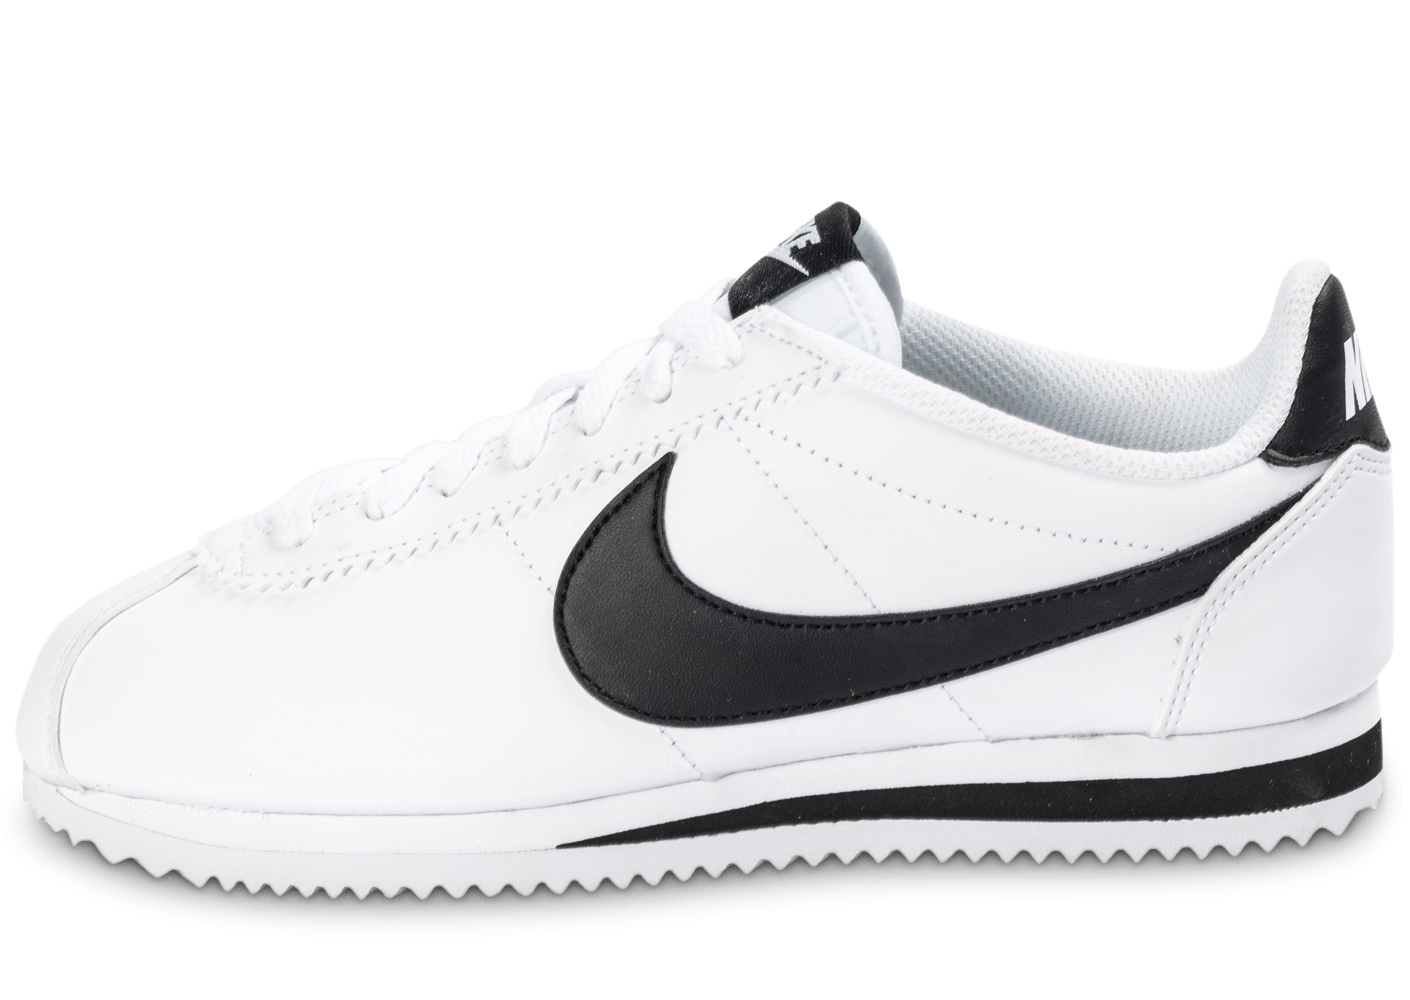 nike classic cortez leather blanche et noire chaussures chaussures chausport. Black Bedroom Furniture Sets. Home Design Ideas